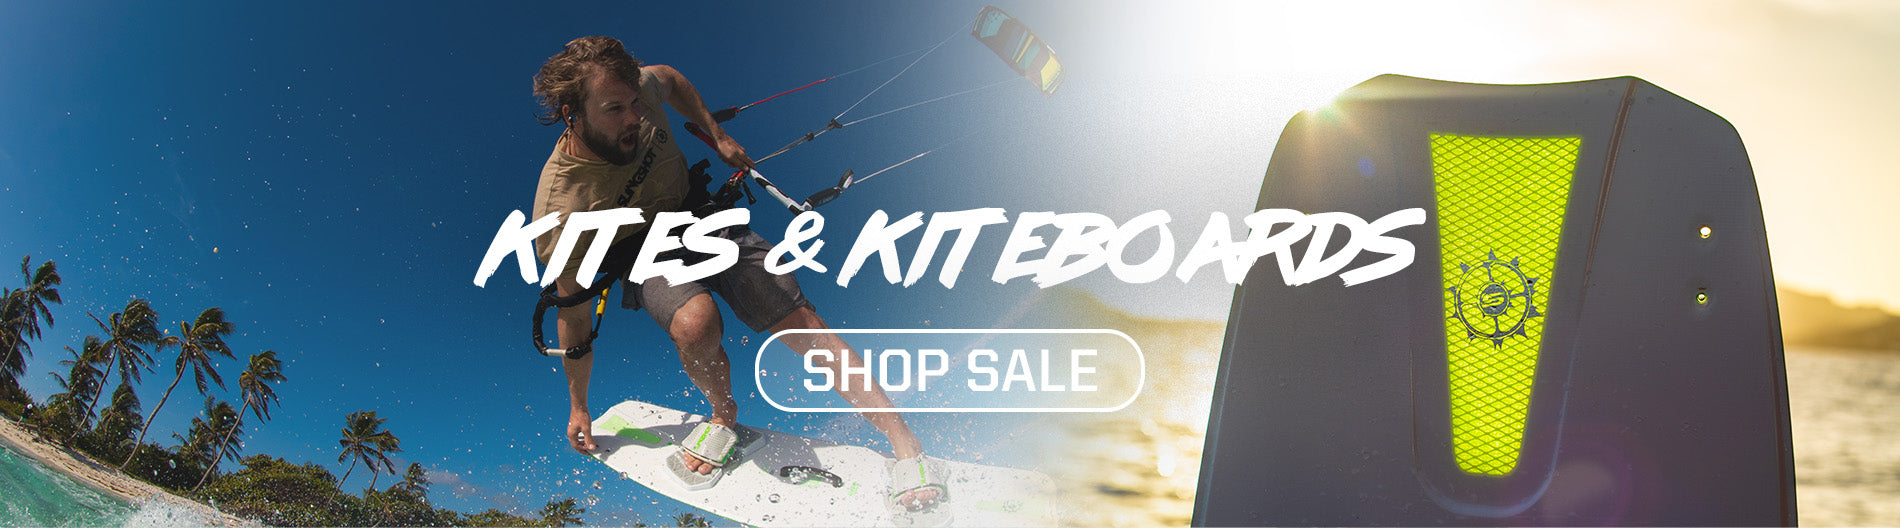 Slingshot Kites and kiteboards october clearance sale